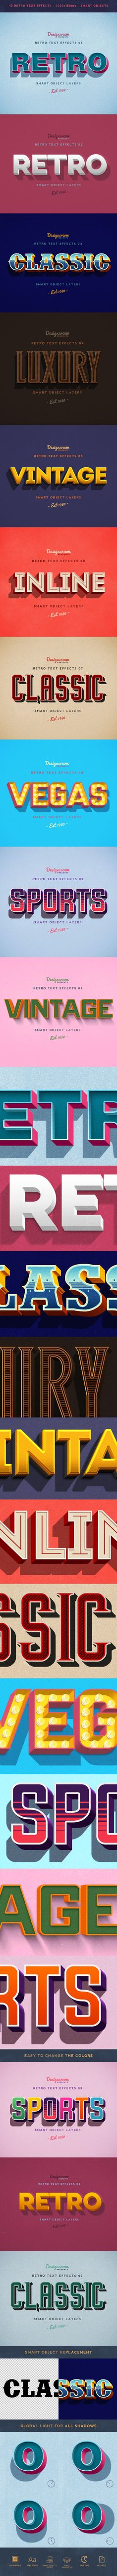 Retro Text Effects Photoshop Actions